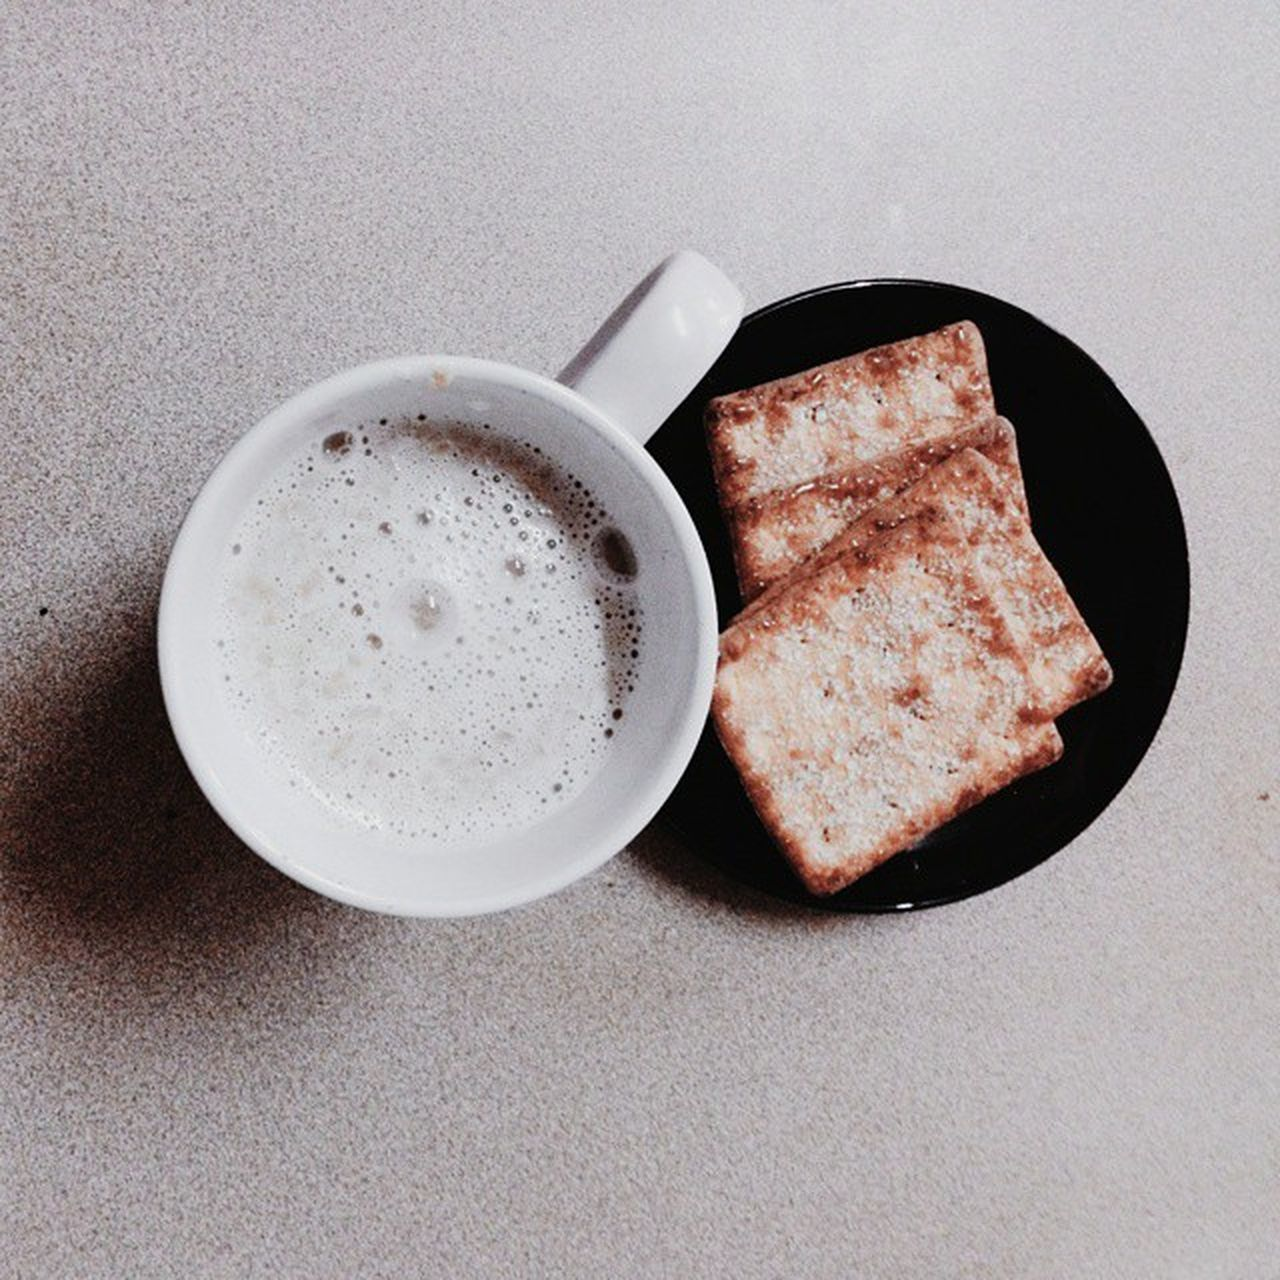 food and drink, food, table, still life, coffee cup, freshness, serving size, drink, no people, coffee - drink, indoors, directly above, breakfast, bread, healthy eating, plate, slice, ready-to-eat, close-up, frothy drink, toasted bread, day